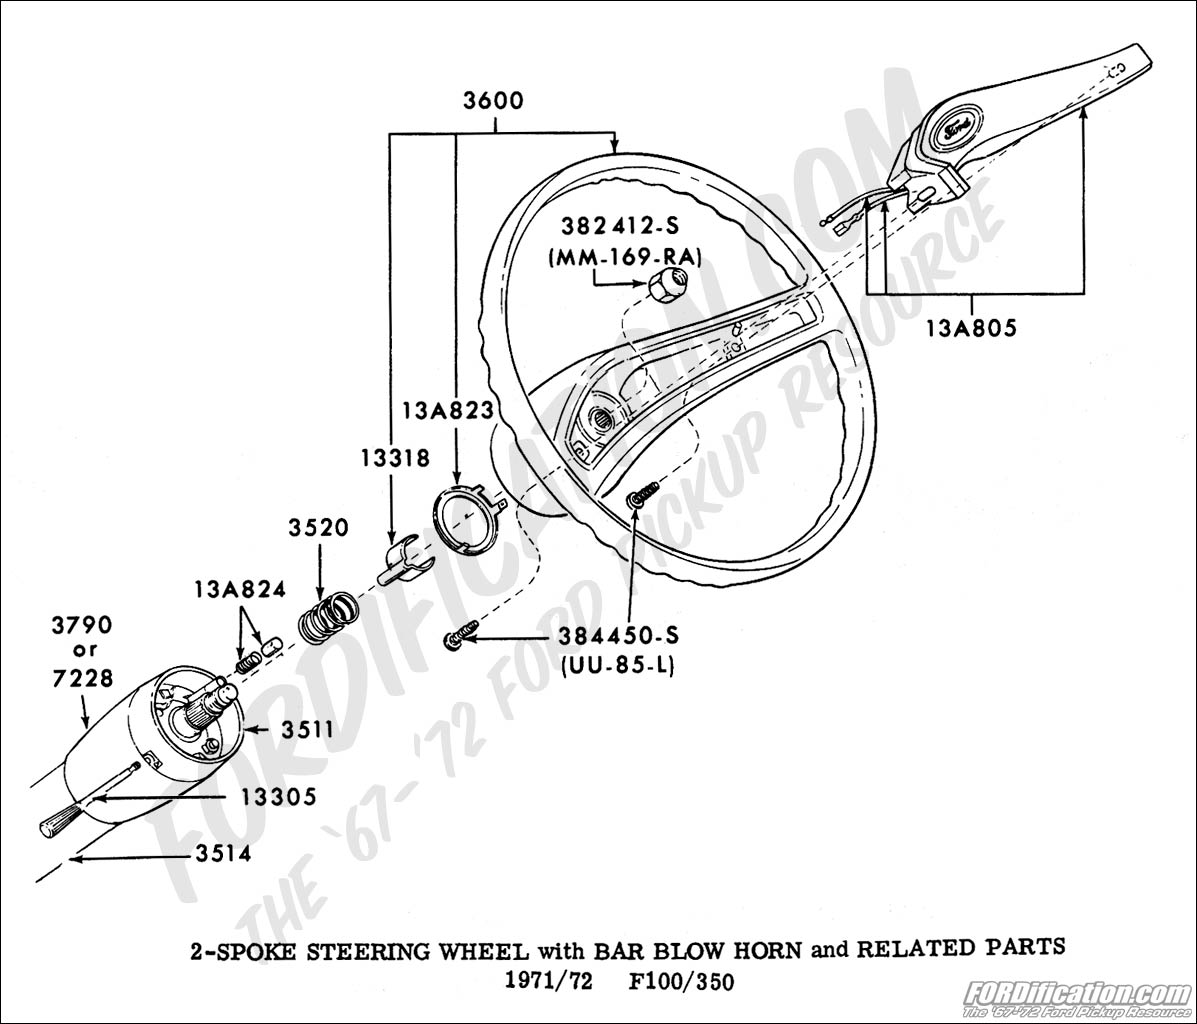 ford truck technical drawings and schematics section i 2 spoke steering wheel bar blow horn and related parts